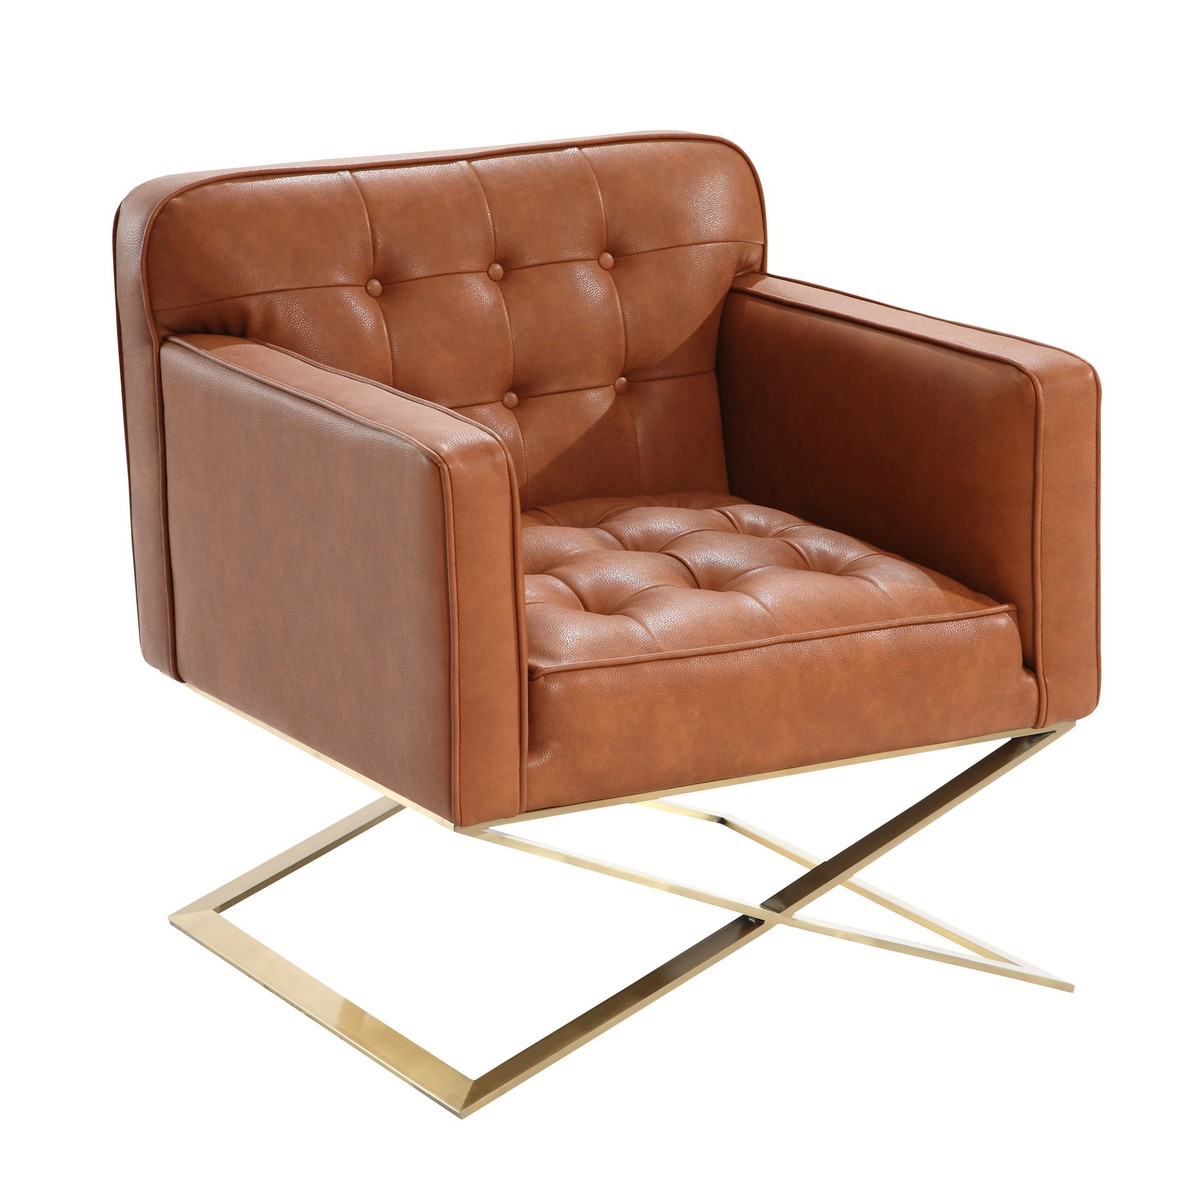 Armen Living Chilton Modern Chair In Brown and Gold Finish